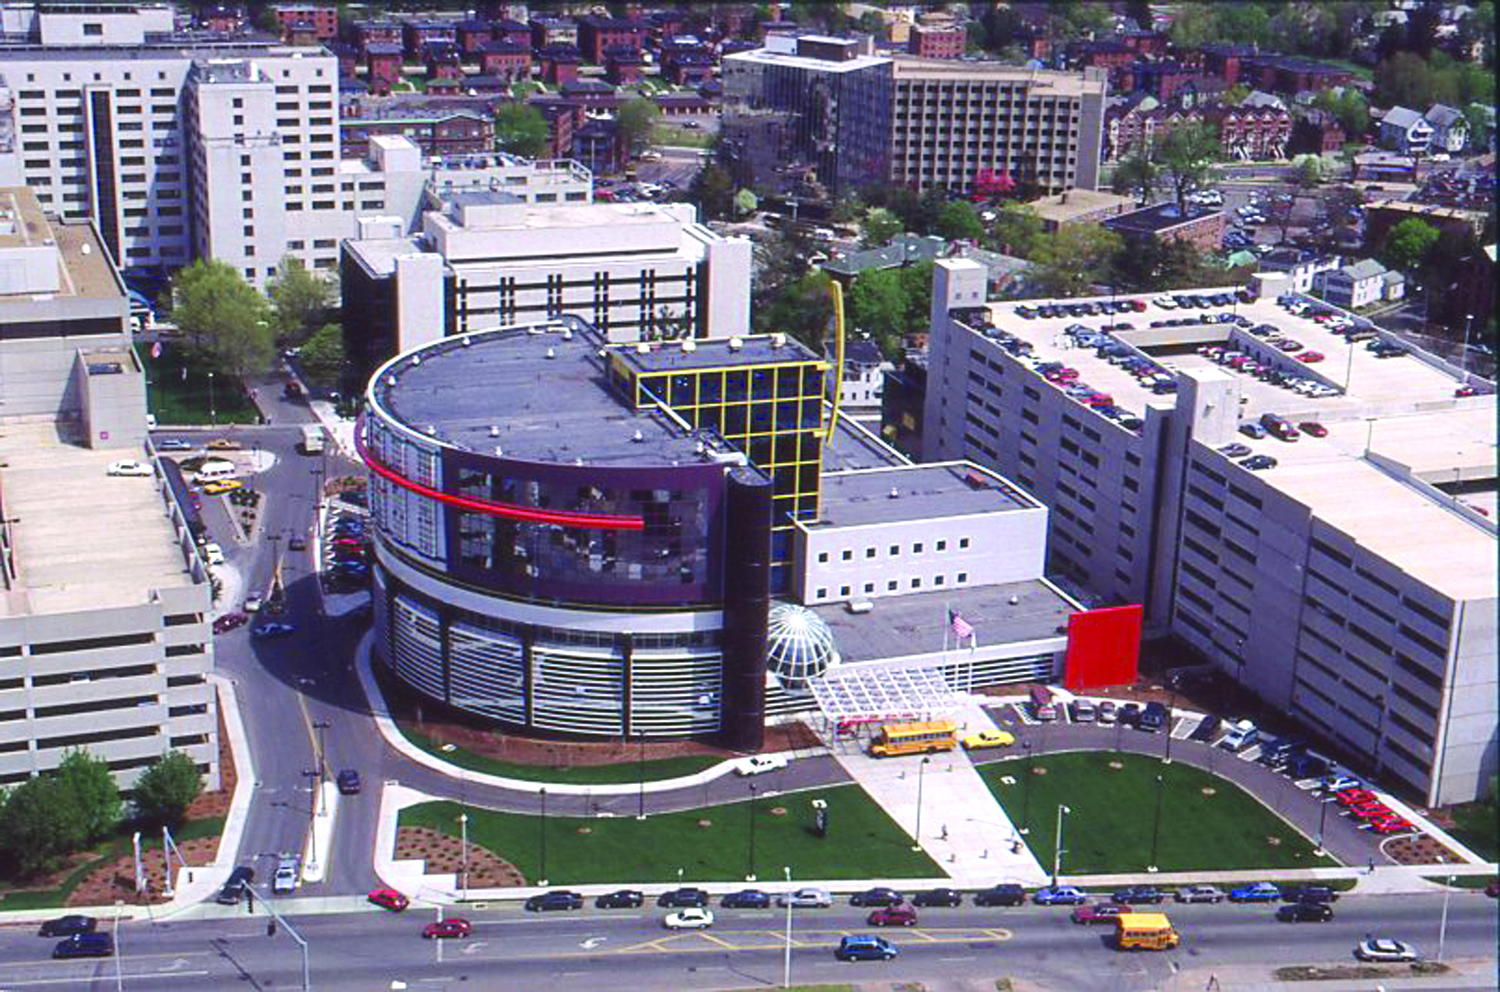 Aerial photo of Connecticut Children's Medical Center from 1996